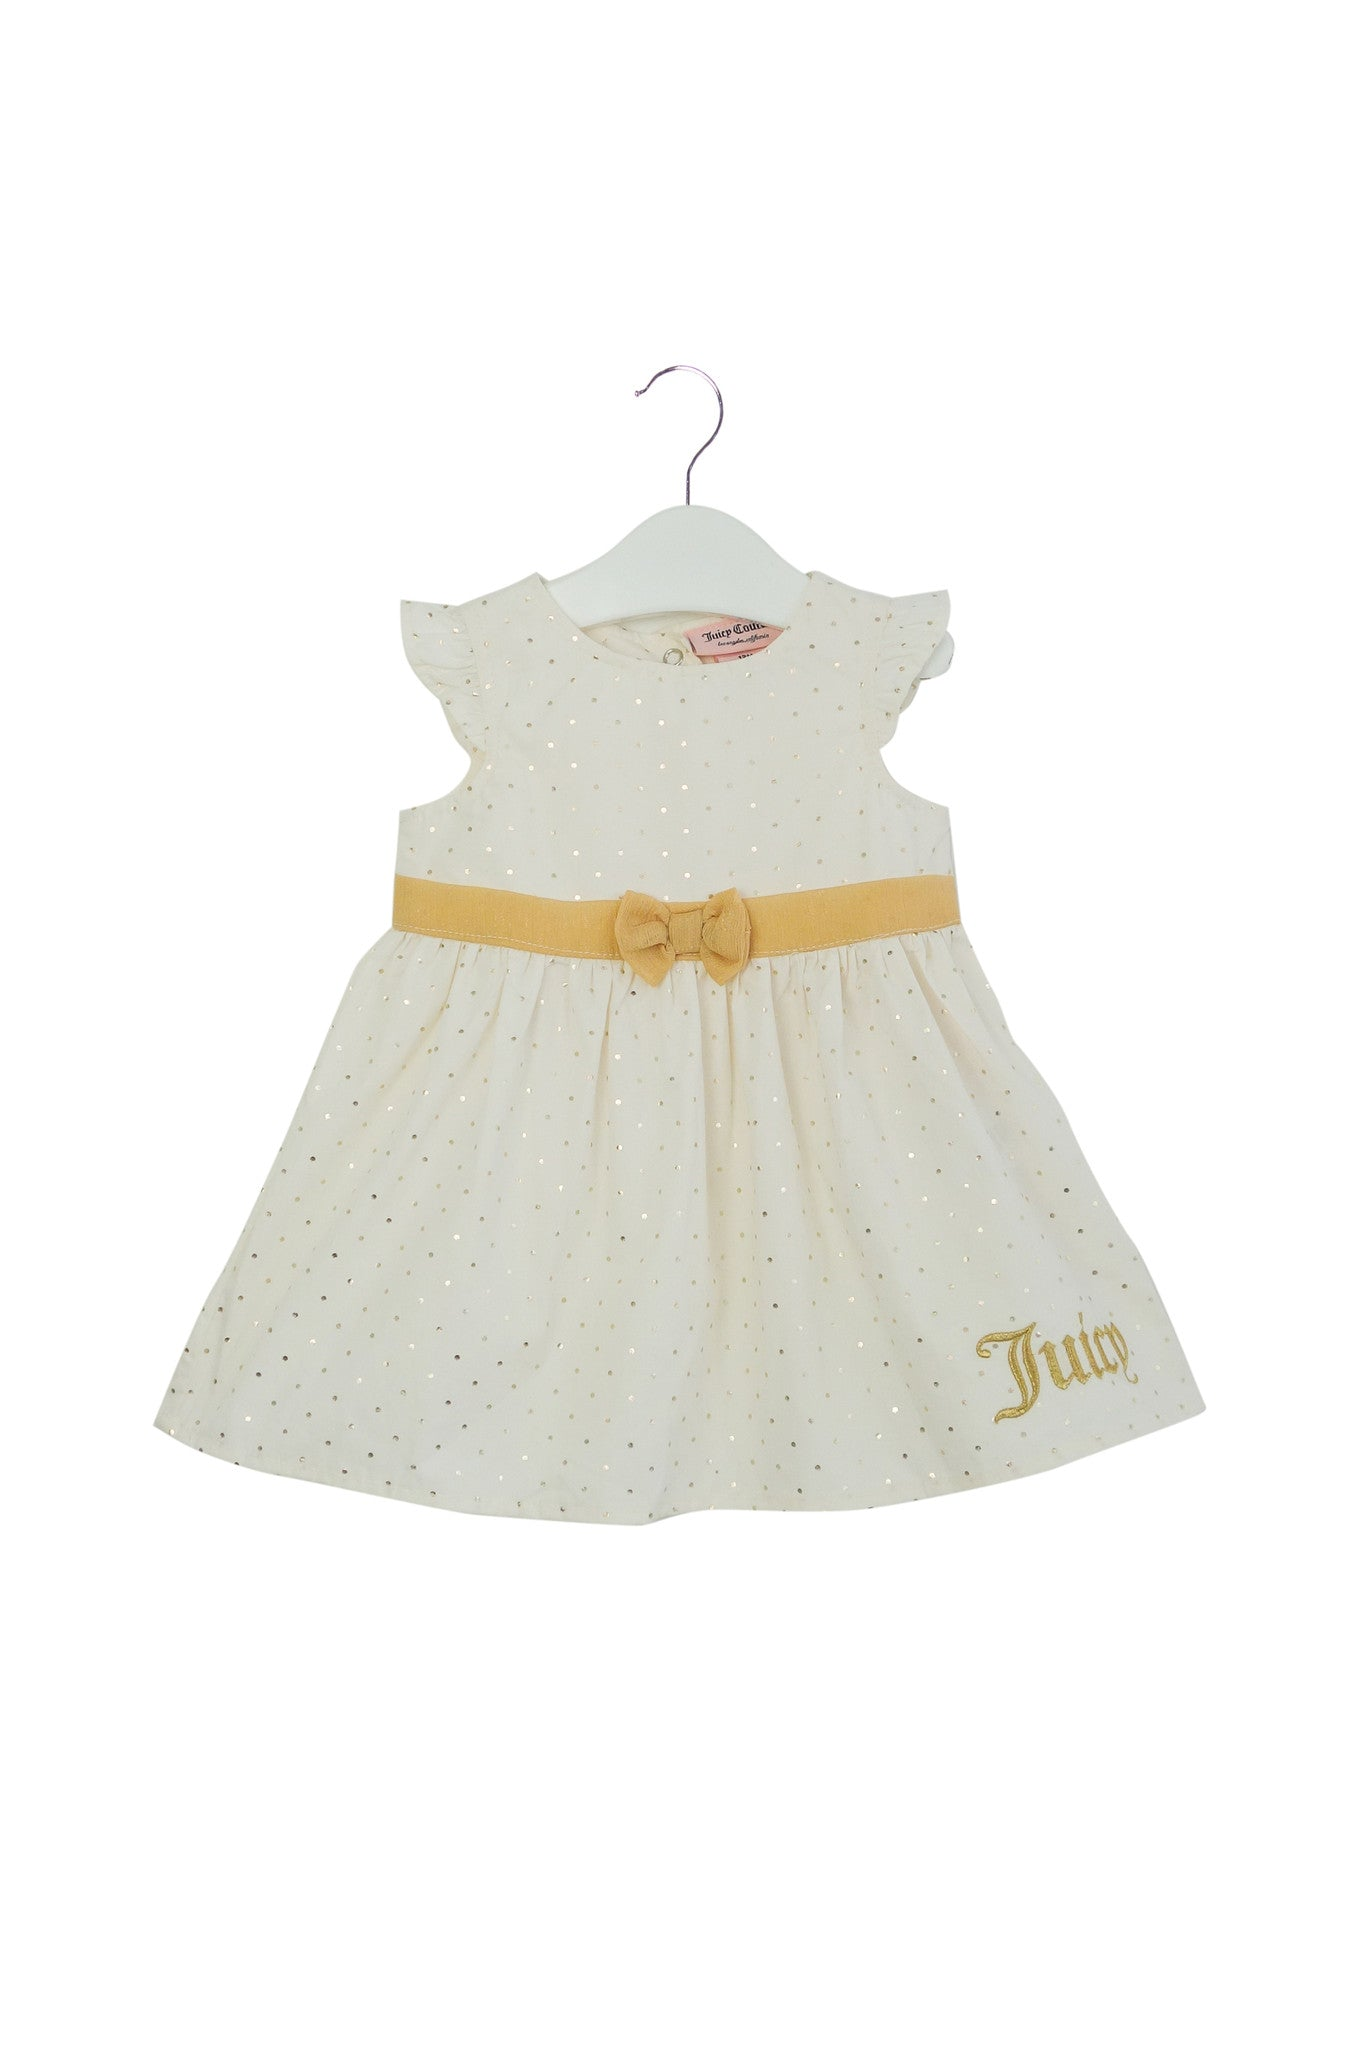 10003206 Juicy Couture Baby~Dress and Bloomer 12M at Retykle